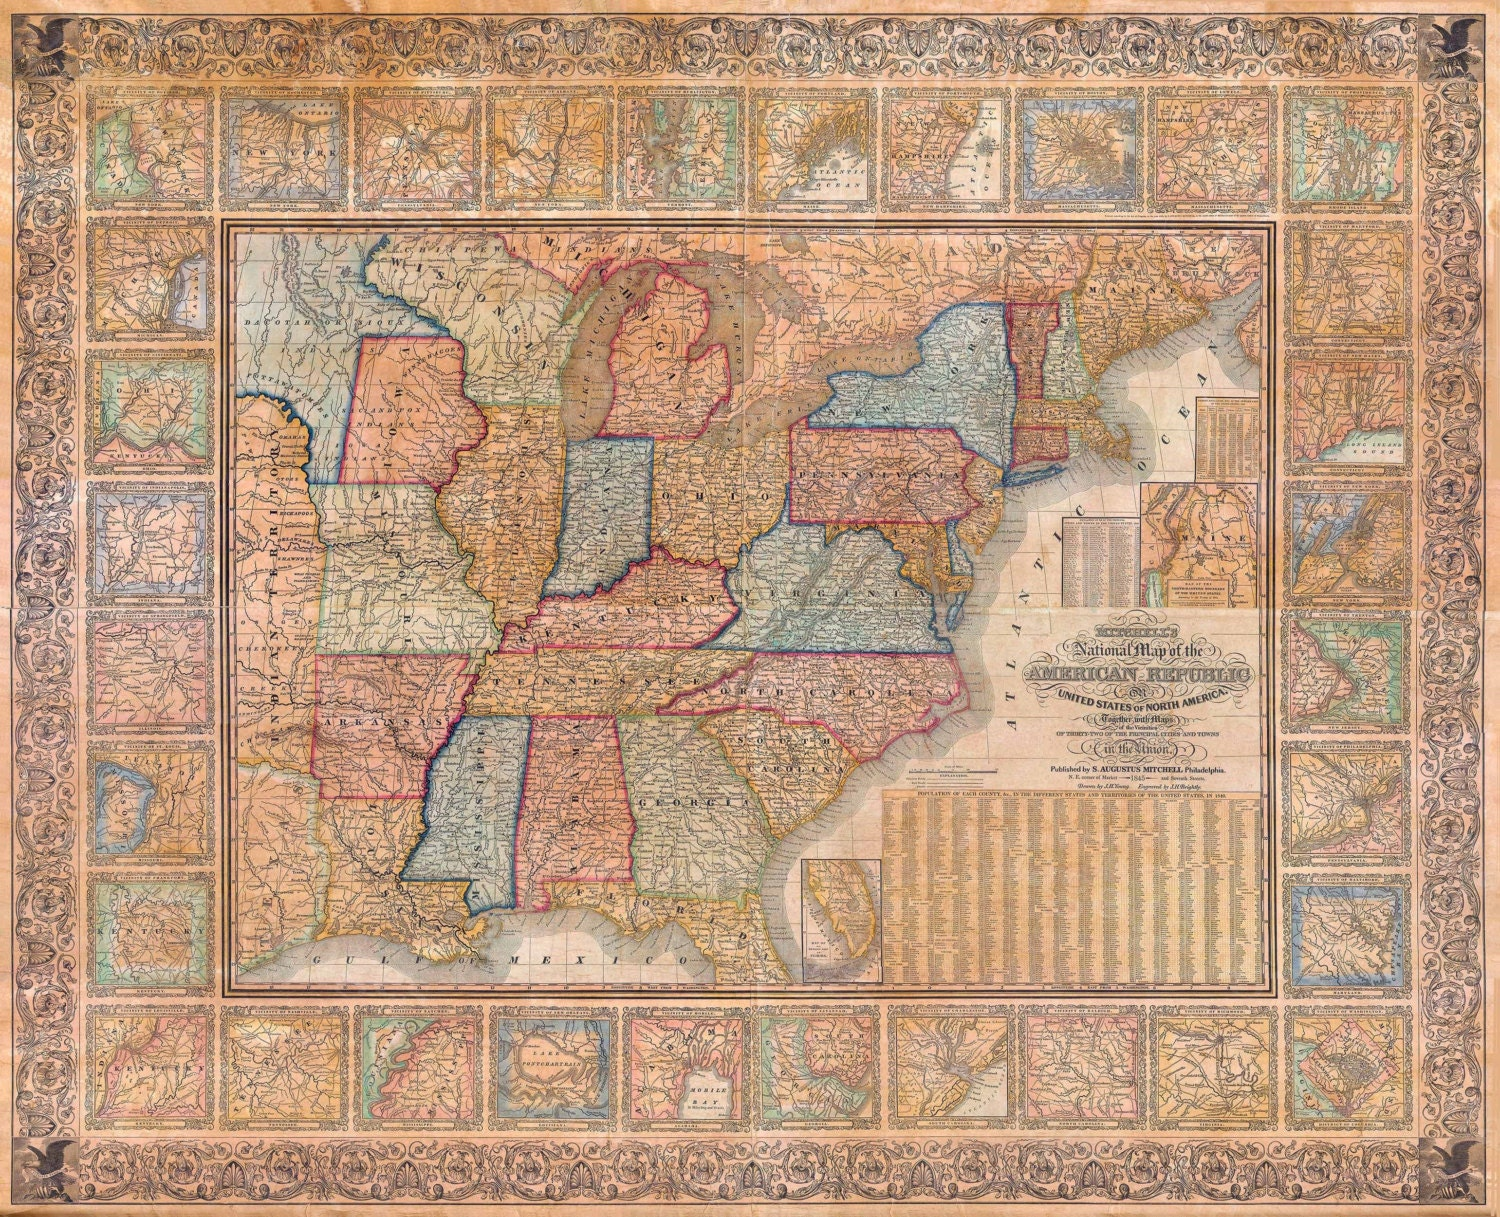 Usa Map Bing Images Large Scale HiRes Detailed Full Road Map Of - Full map of usa states